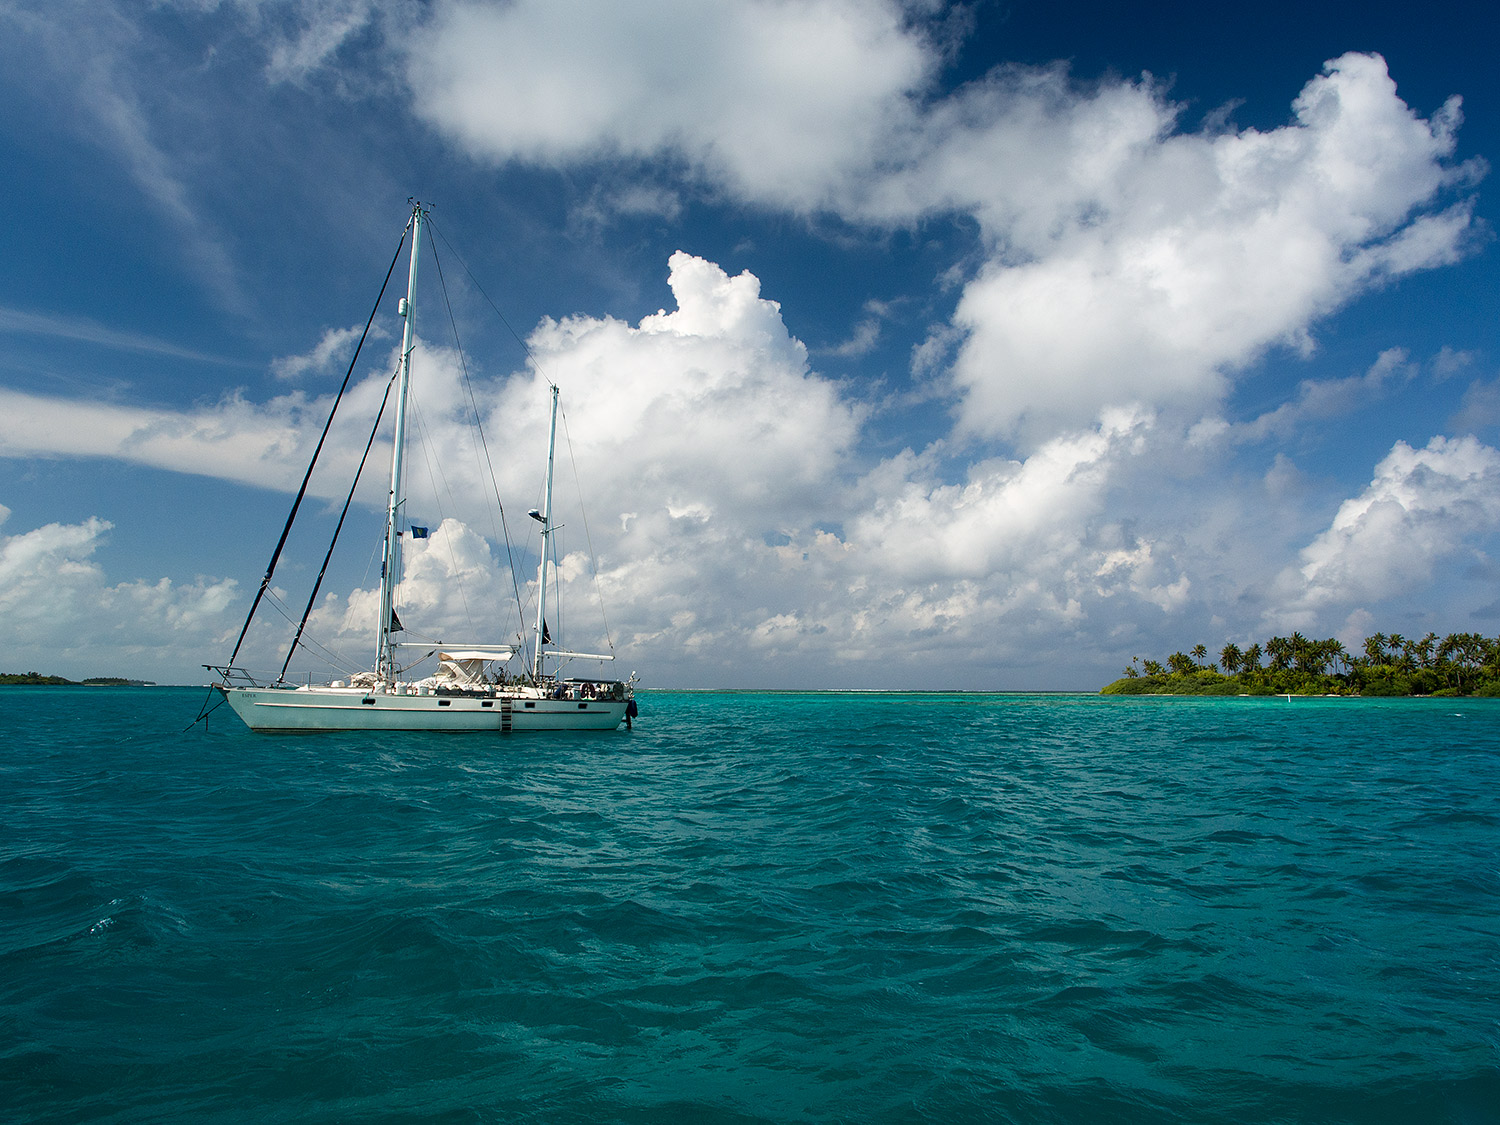 One of the last pics of Esper at anchor in south Maldives